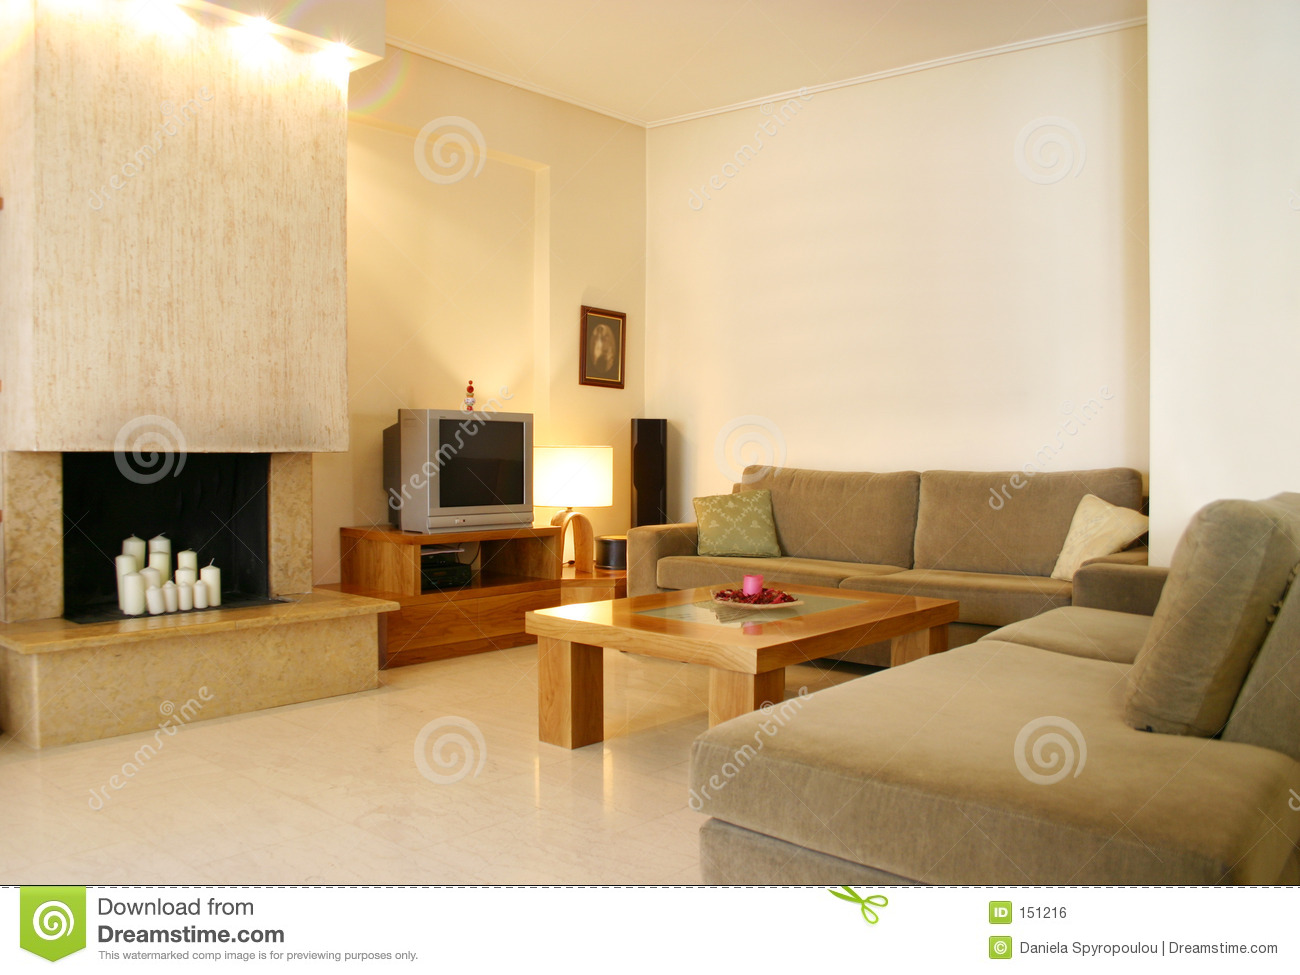 Home Interior Design Stock Photo Image Of Modern